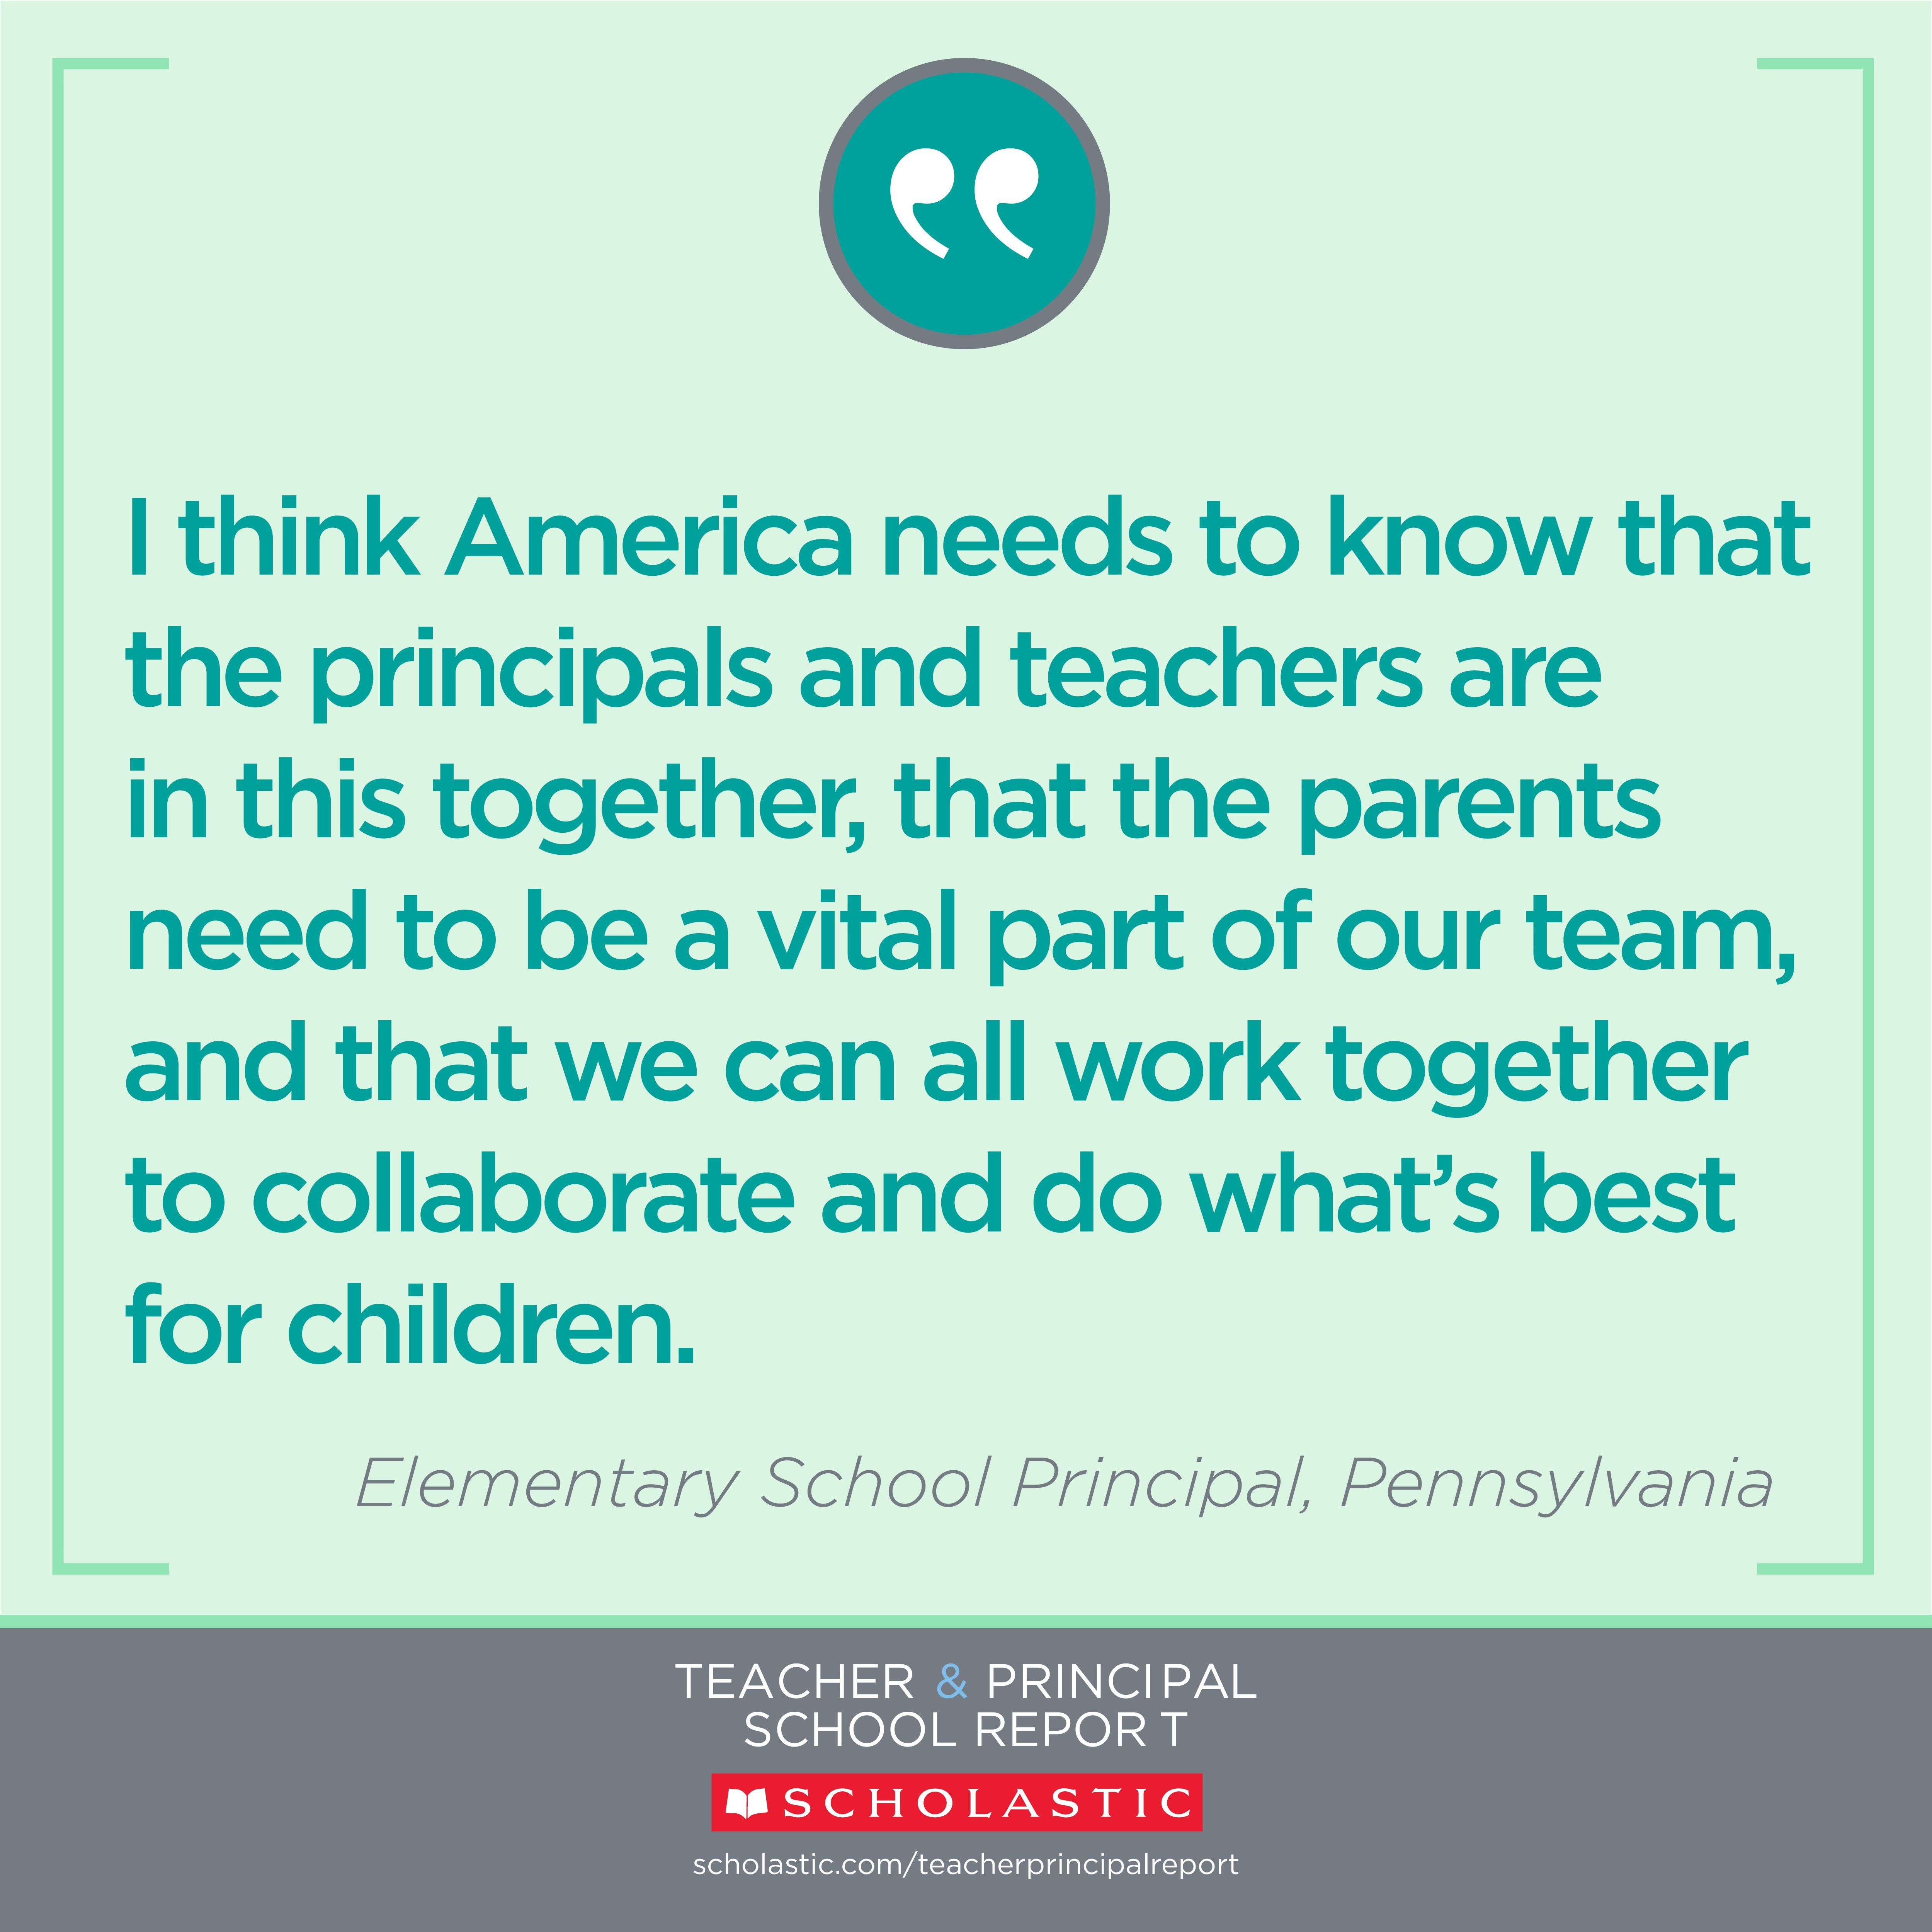 Principals Vital Part Of Special >> Pin By Scholastic On Teacher Principal School Report Student